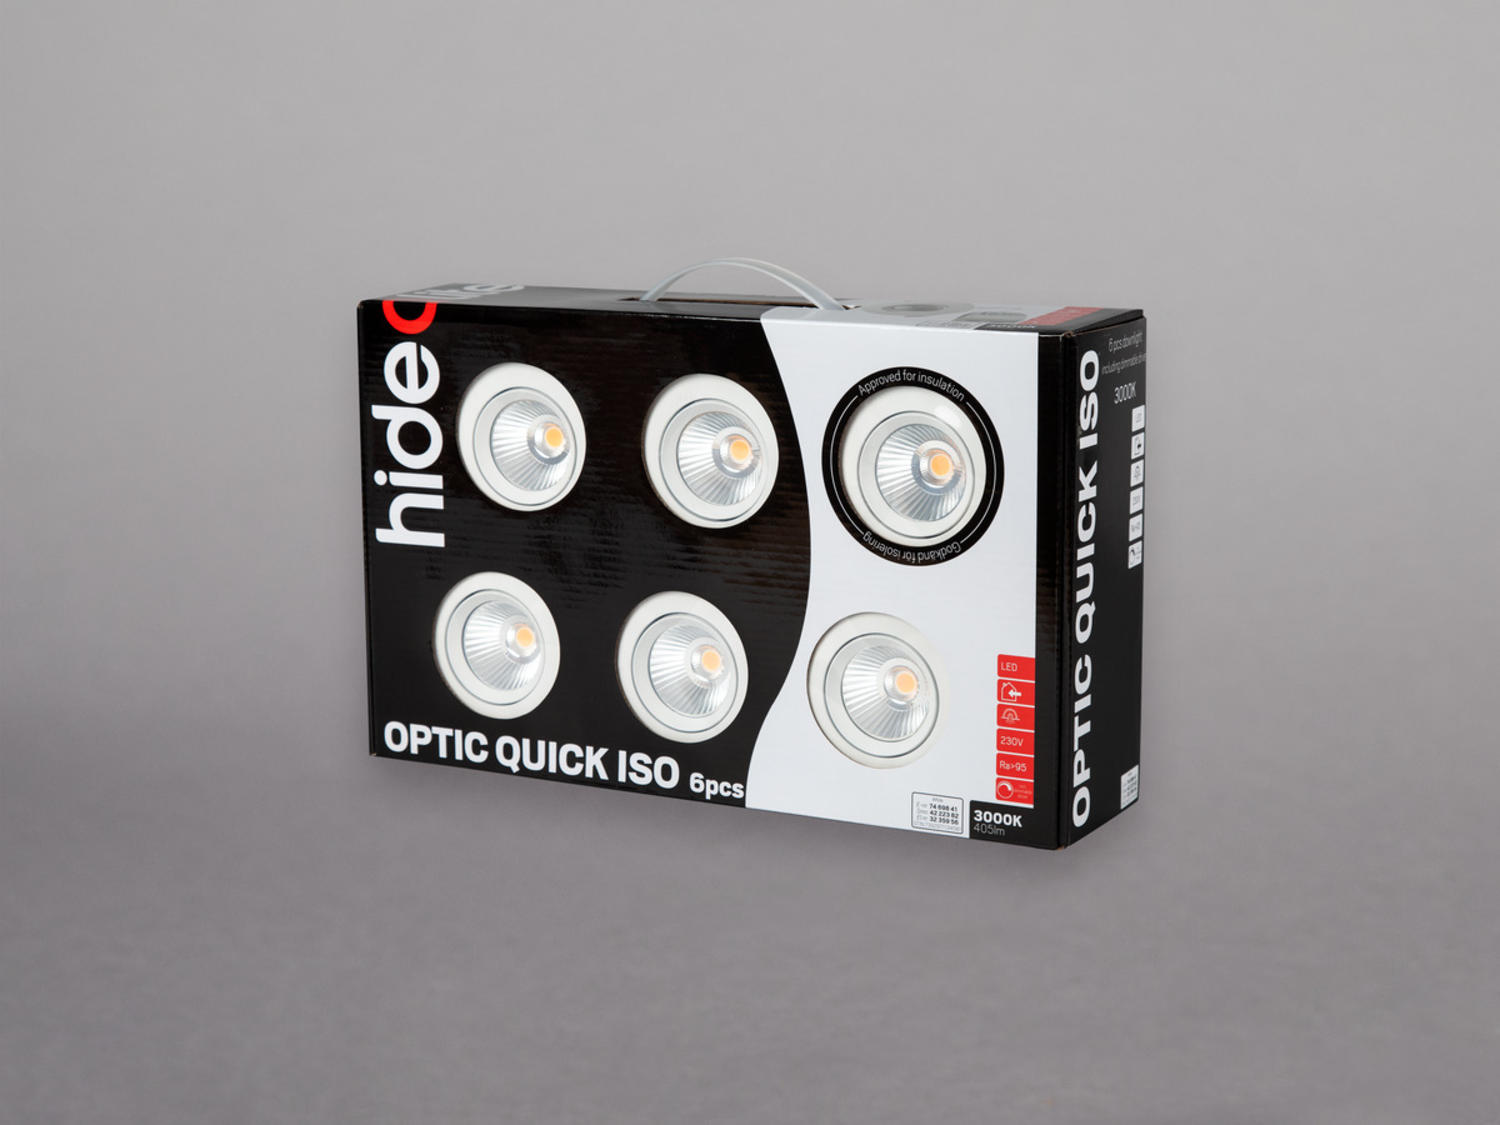 Optic Quick ISO 6-pack